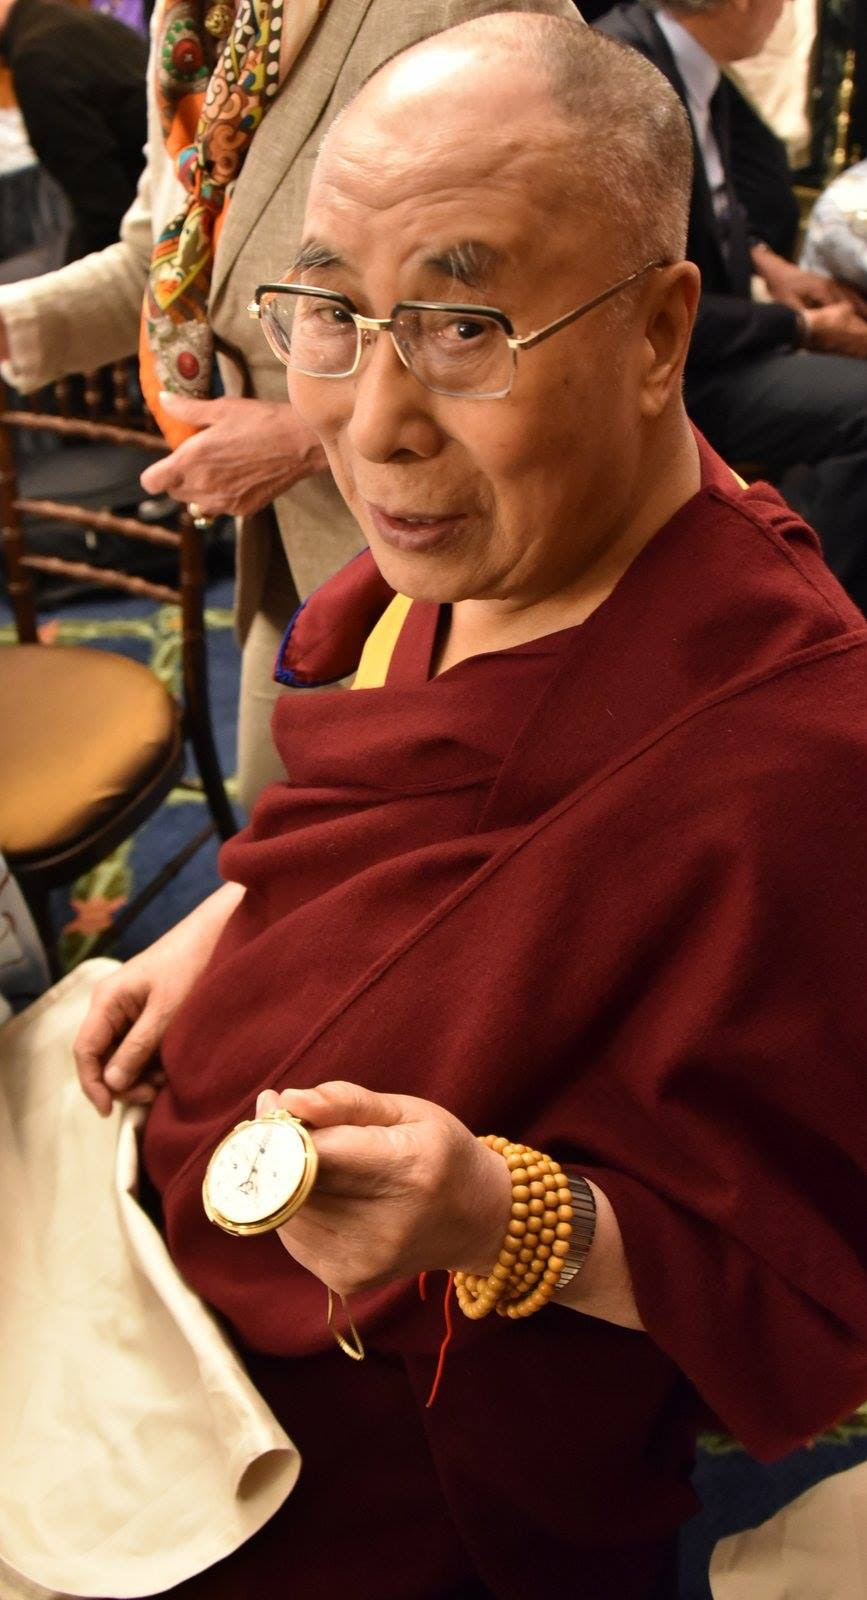 Found: The Dalai Lama's Patek Philippe, Gifted By FDR Via An OSS Officer Who Was The Grandson Of Leo Tolstoy (Seriously) Found: The Dalai Lama's Patek Philippe, Gifted By FDR Via An OSS Officer Who Was The Grandson Of Leo Tolstoy (Seriously) 13391563 1095565817148258 2303877044127700143 o